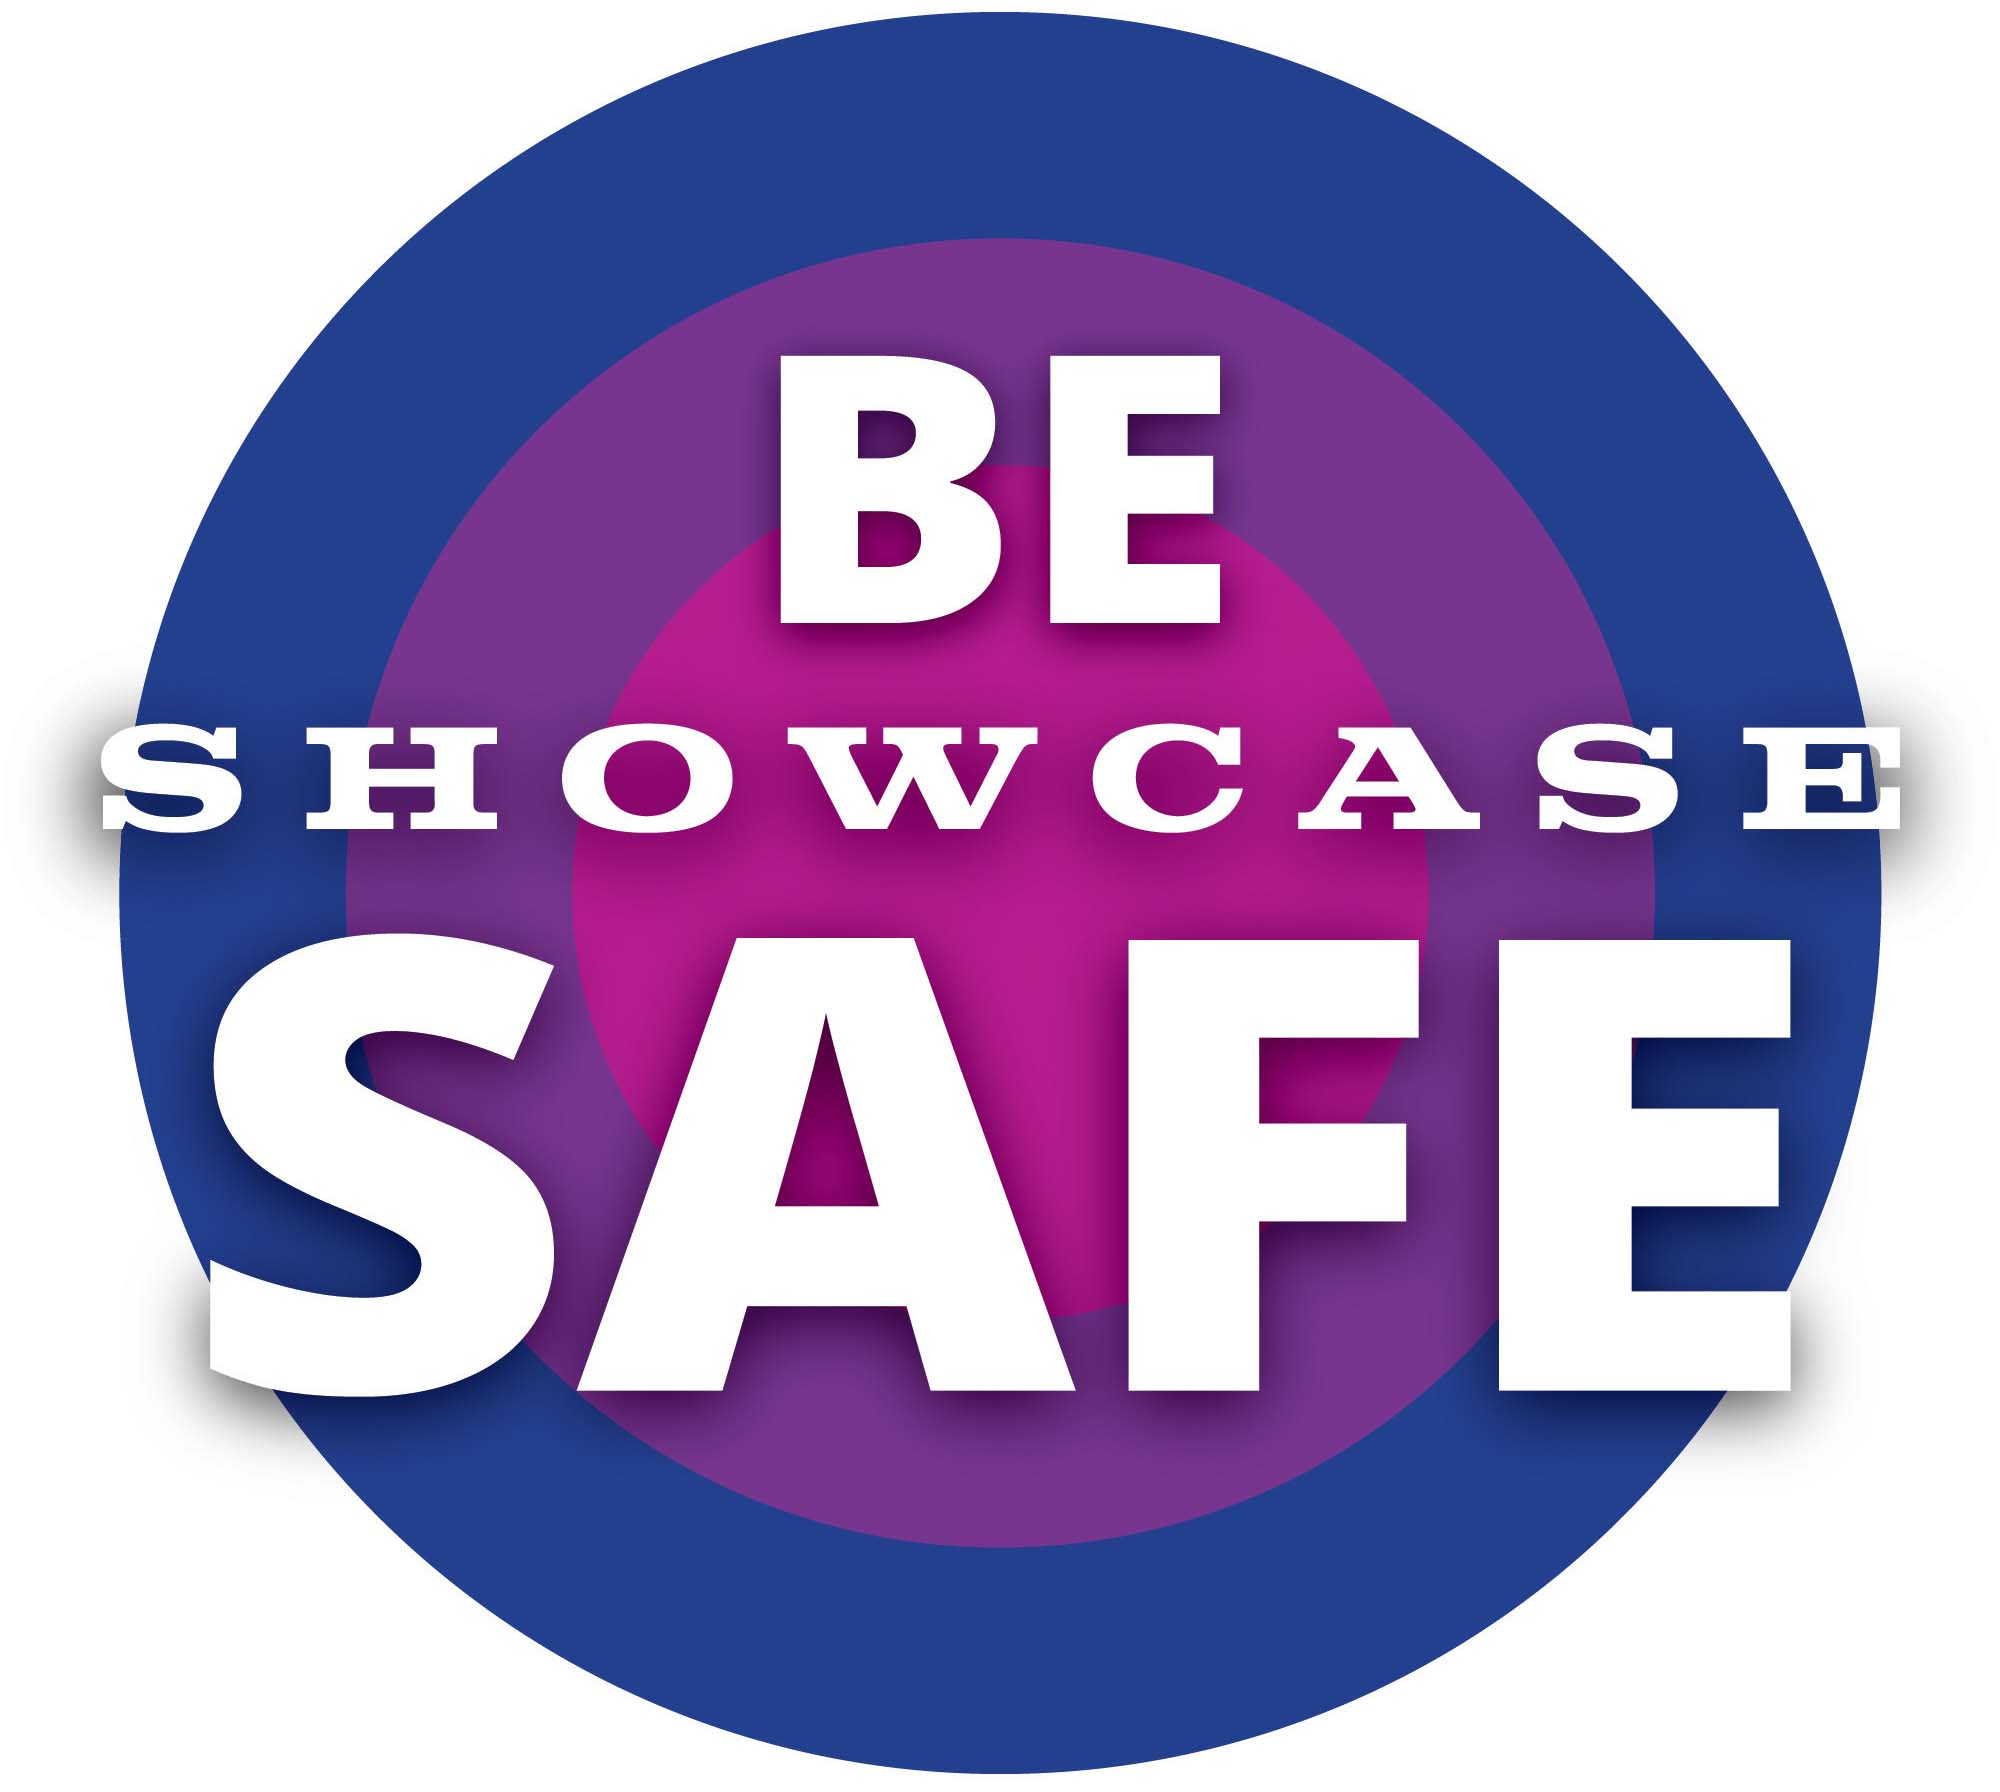 Showcase Be Safe logo.